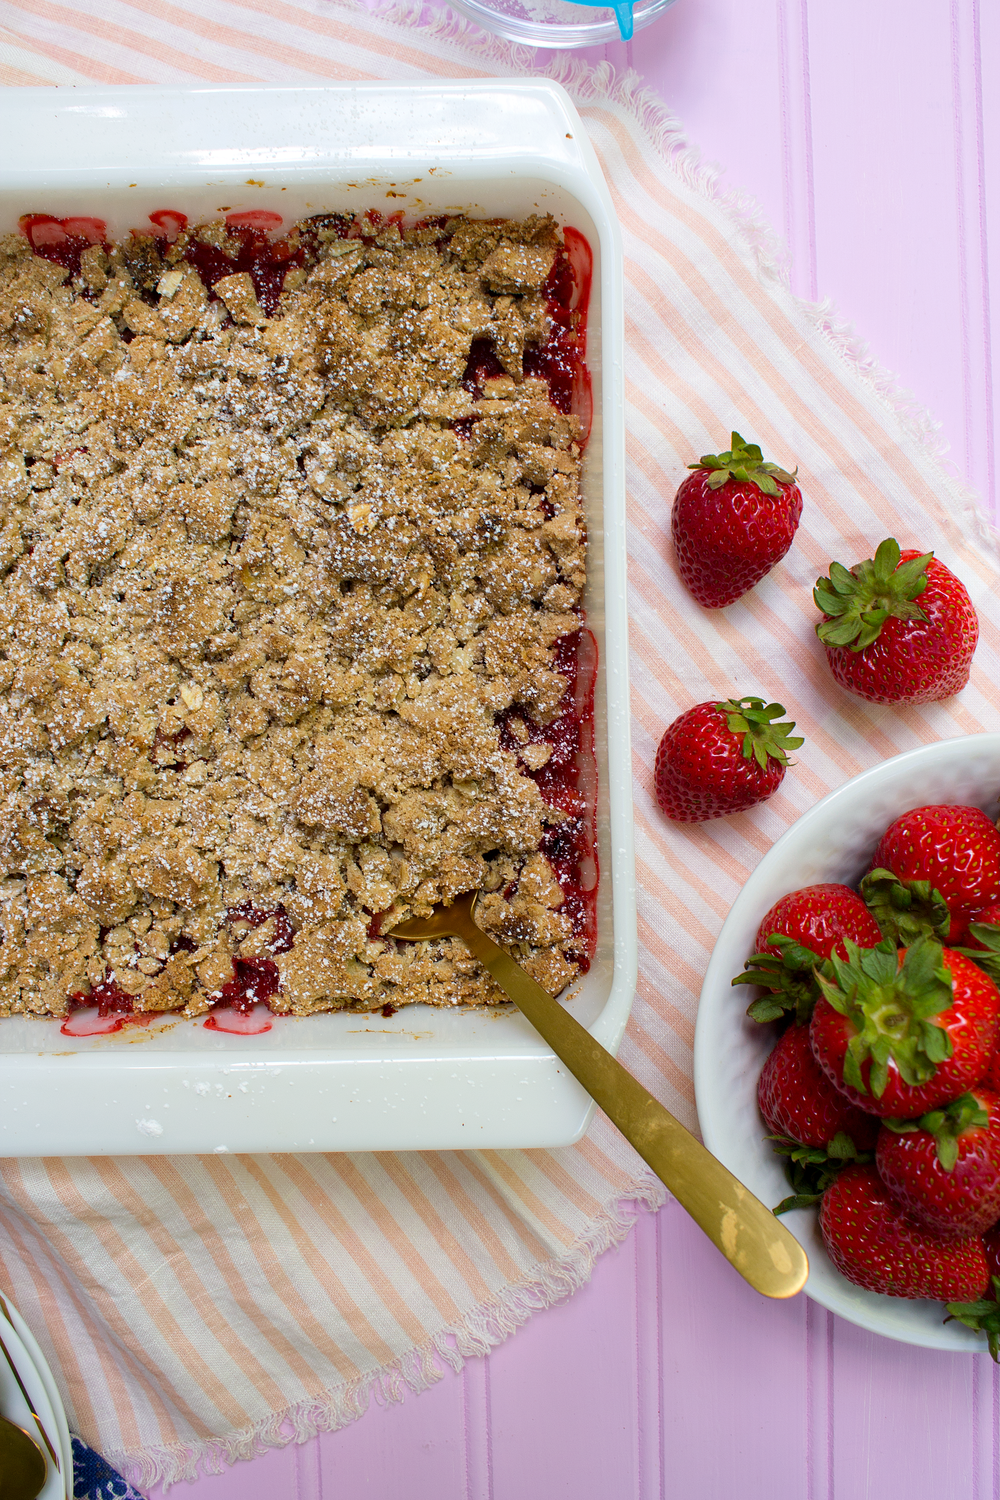 Recipe for Strawberry Rhubarb Crisp from the Unusually Lovely Blog.